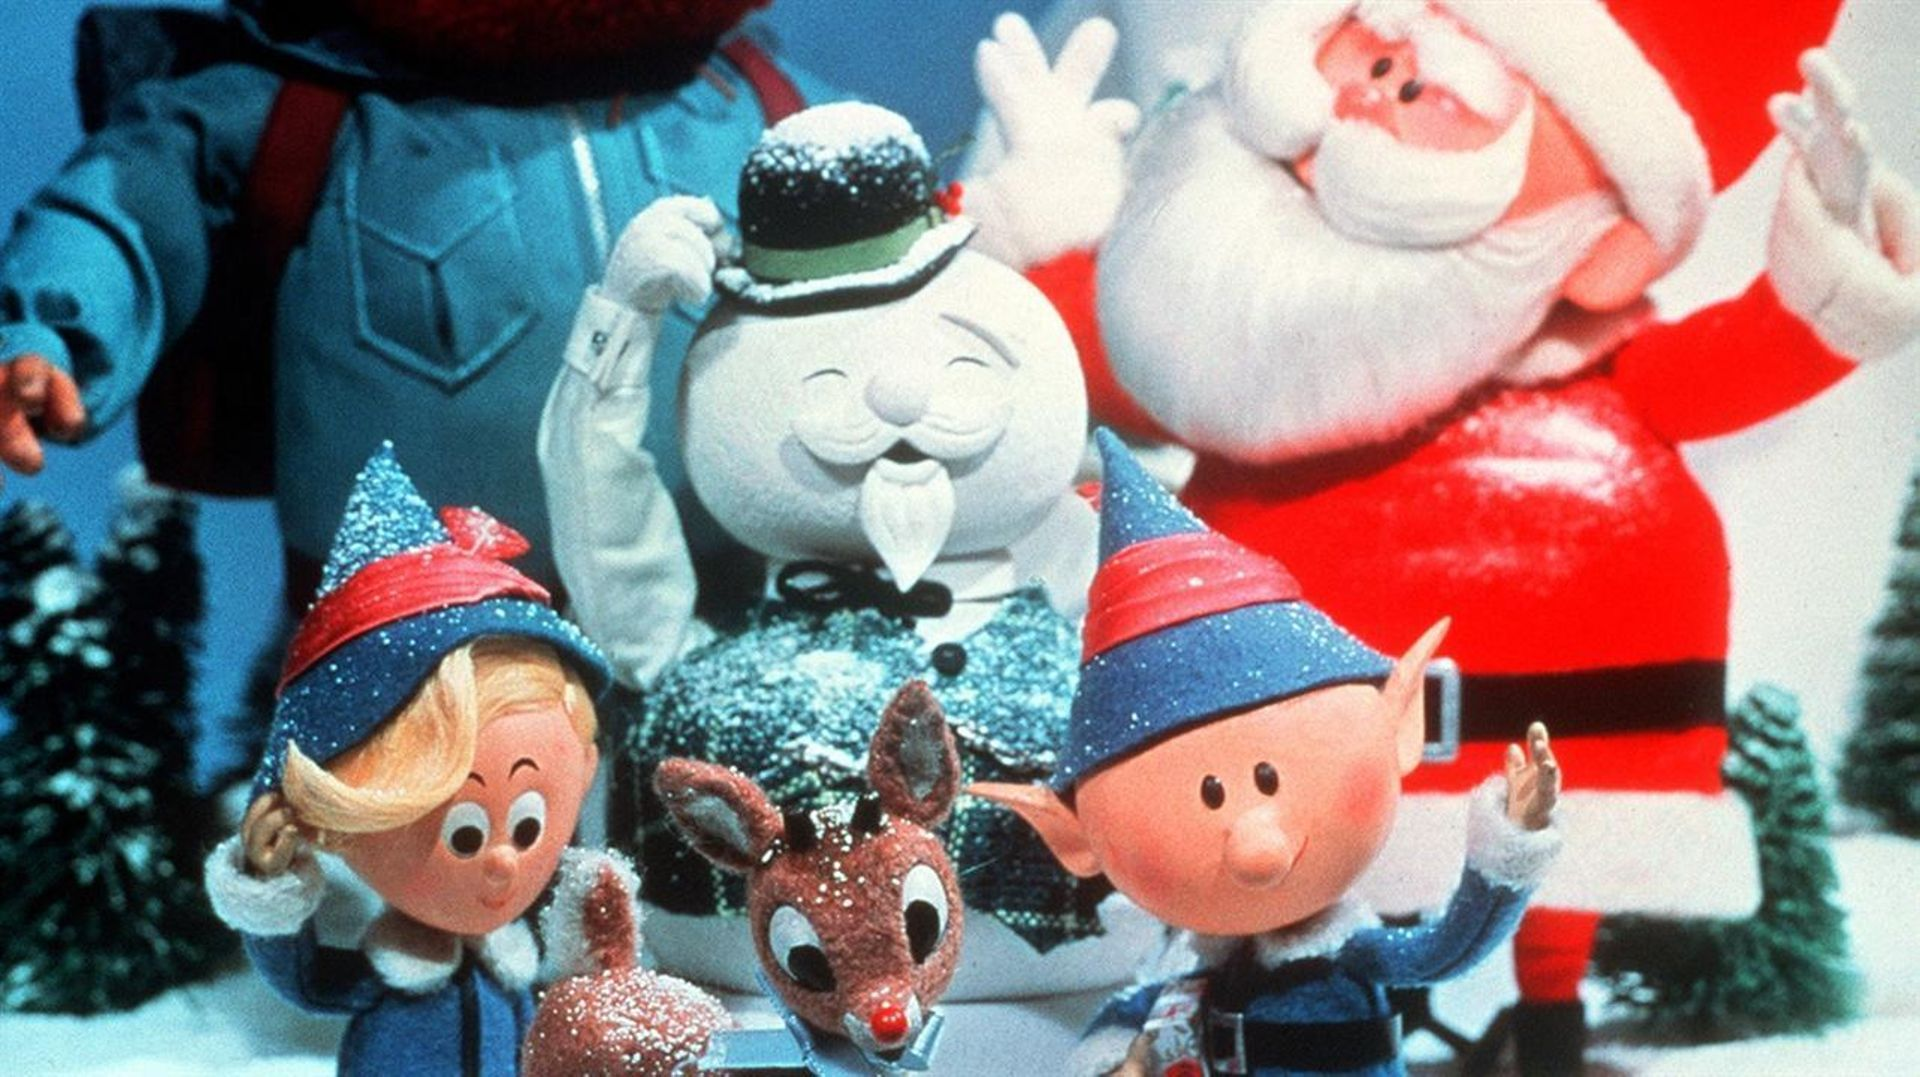 Rudolph The Red Nosed Reindeer The Island Of Misfit Toys 2001 Where To Watch It Streaming Online Reelgood,Baggage Fees United Airlines